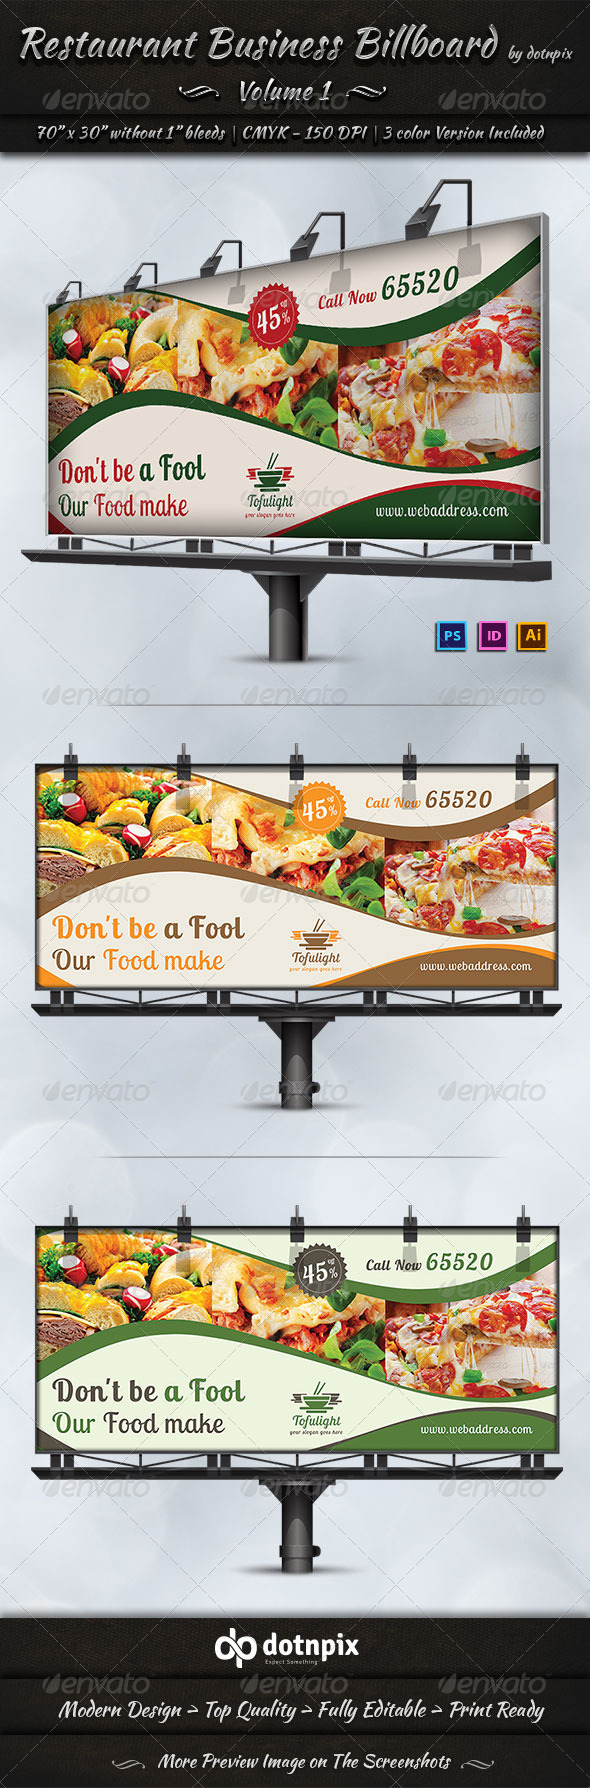 GraphicRiver Restaurant Business Billboard Volume 1 7194434